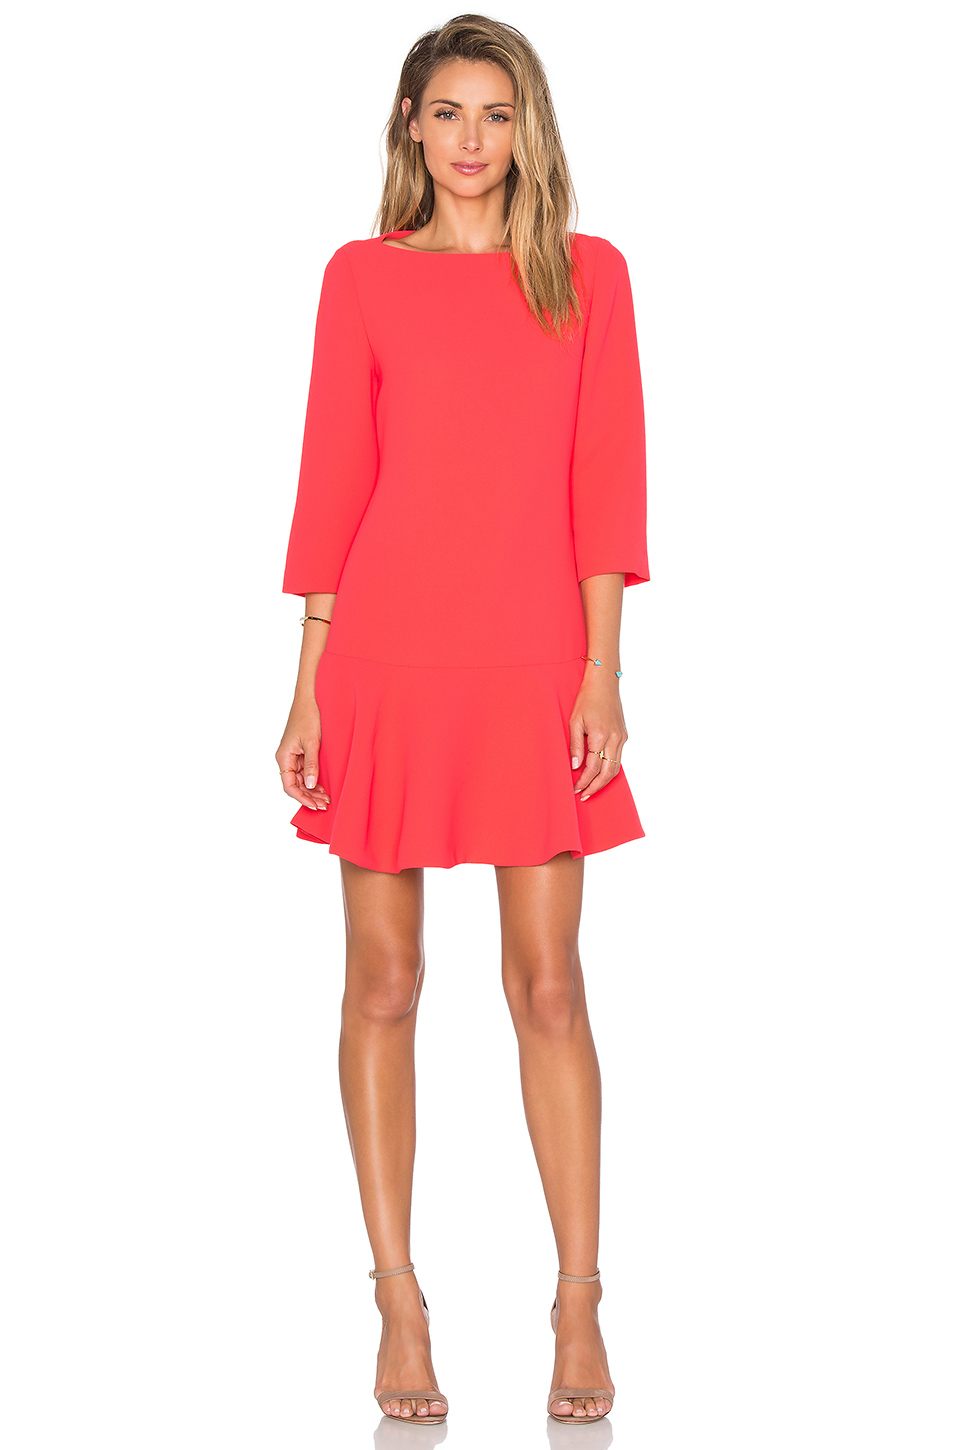 Kate Spade New York Crepe Flounce Dress In Pink Lyst